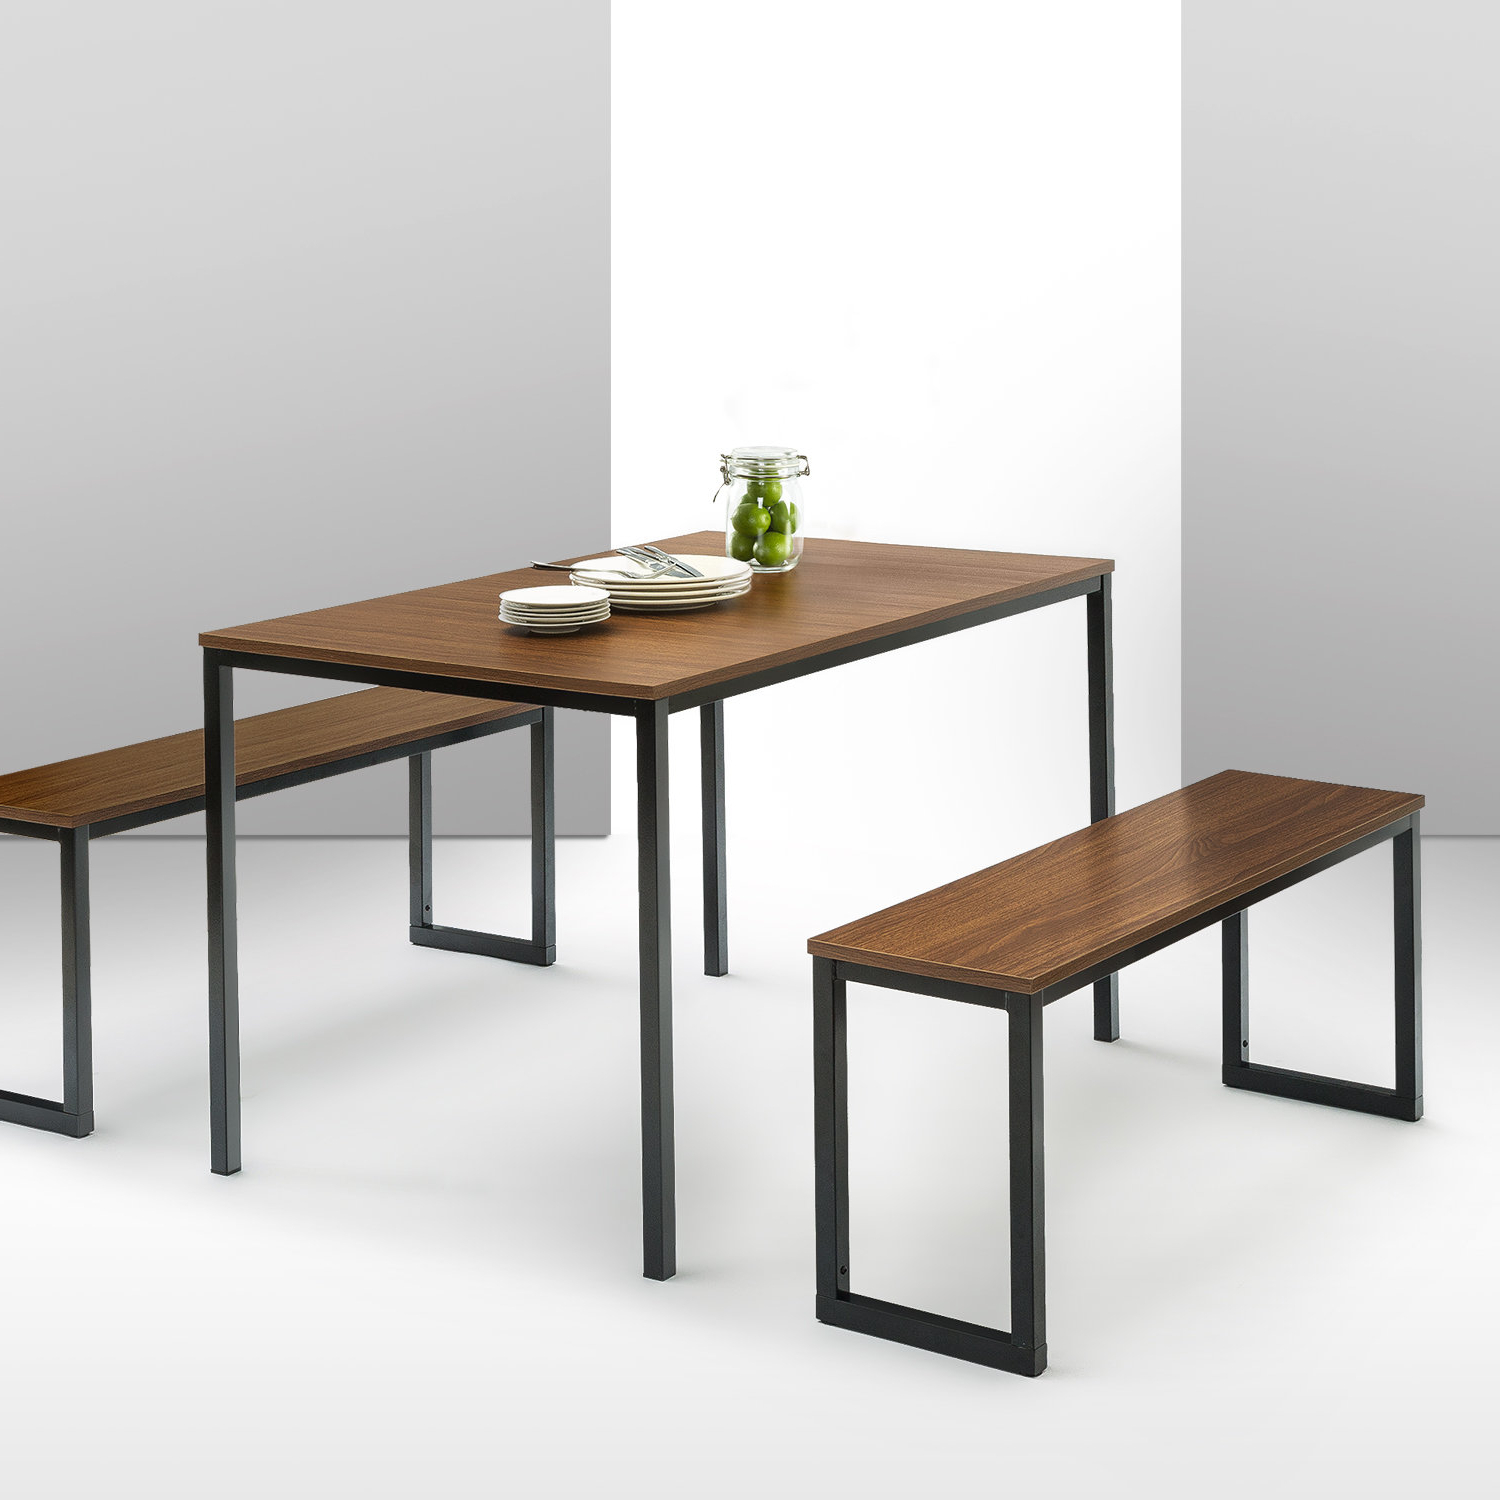 Frida 3 Piece Dining Table Sets For Popular Frida 3 Piece Dining Table Set (Gallery 1 of 20)